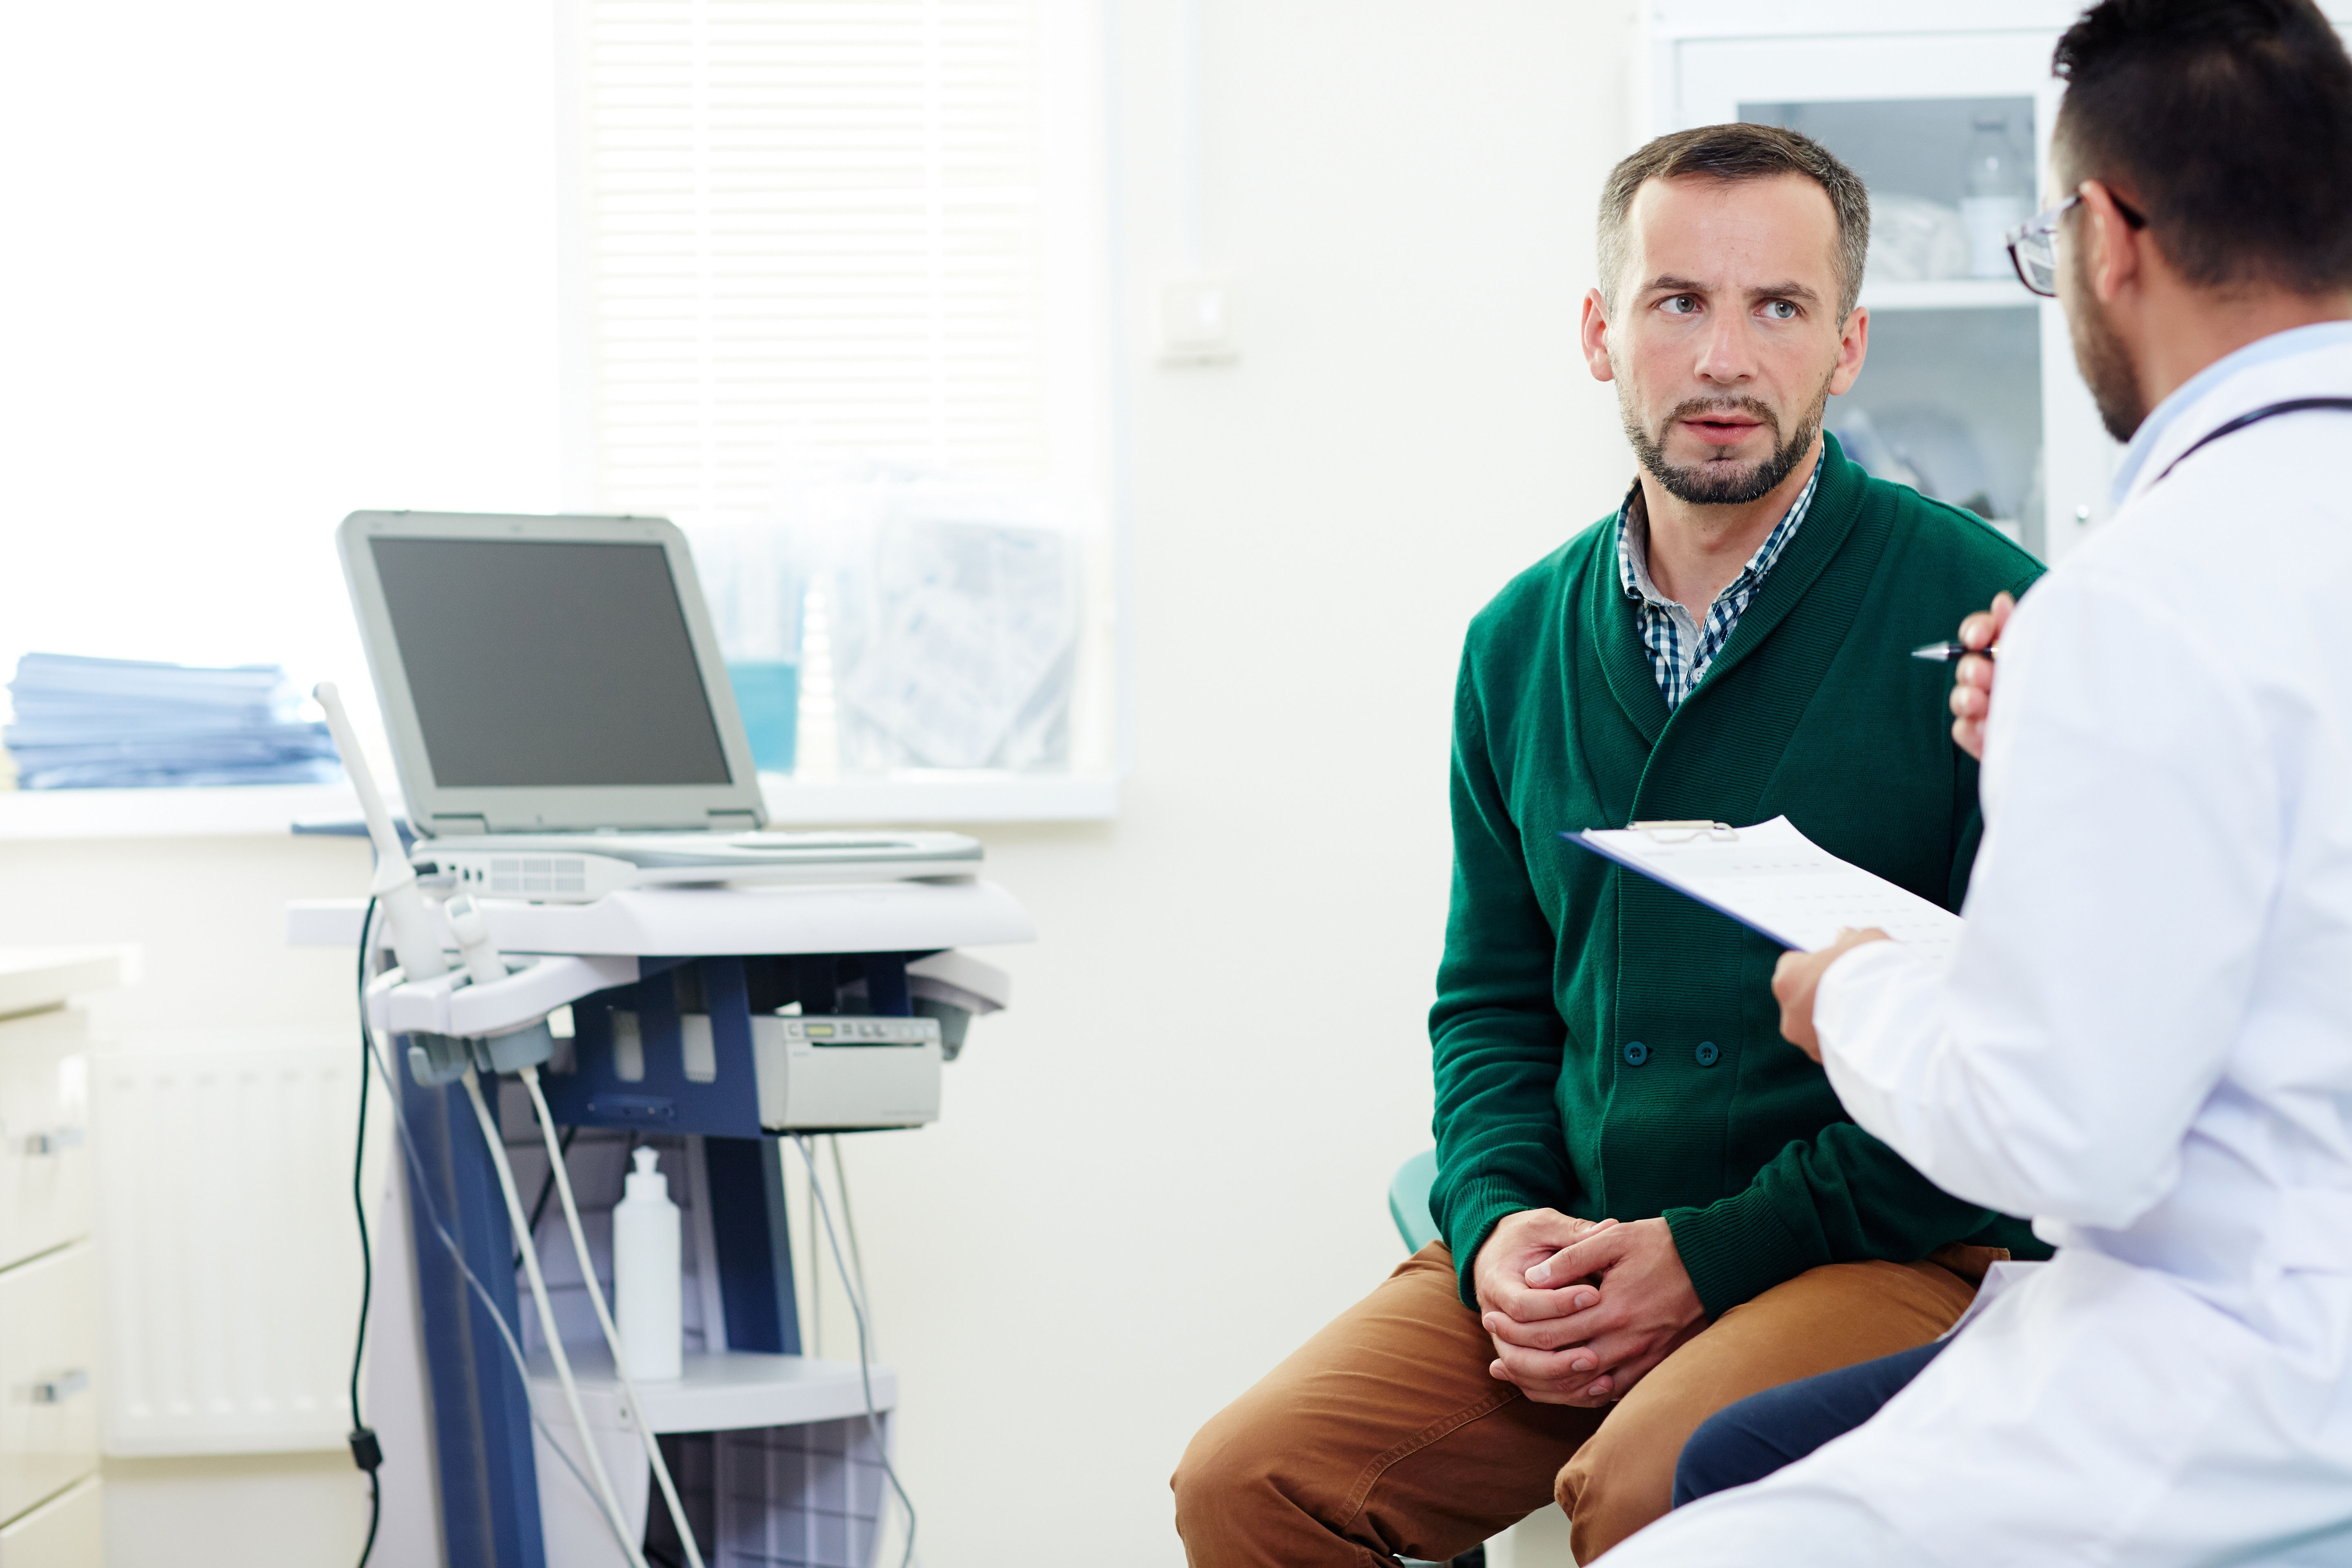 Serious patient listening to advice of professional practitioner after examination